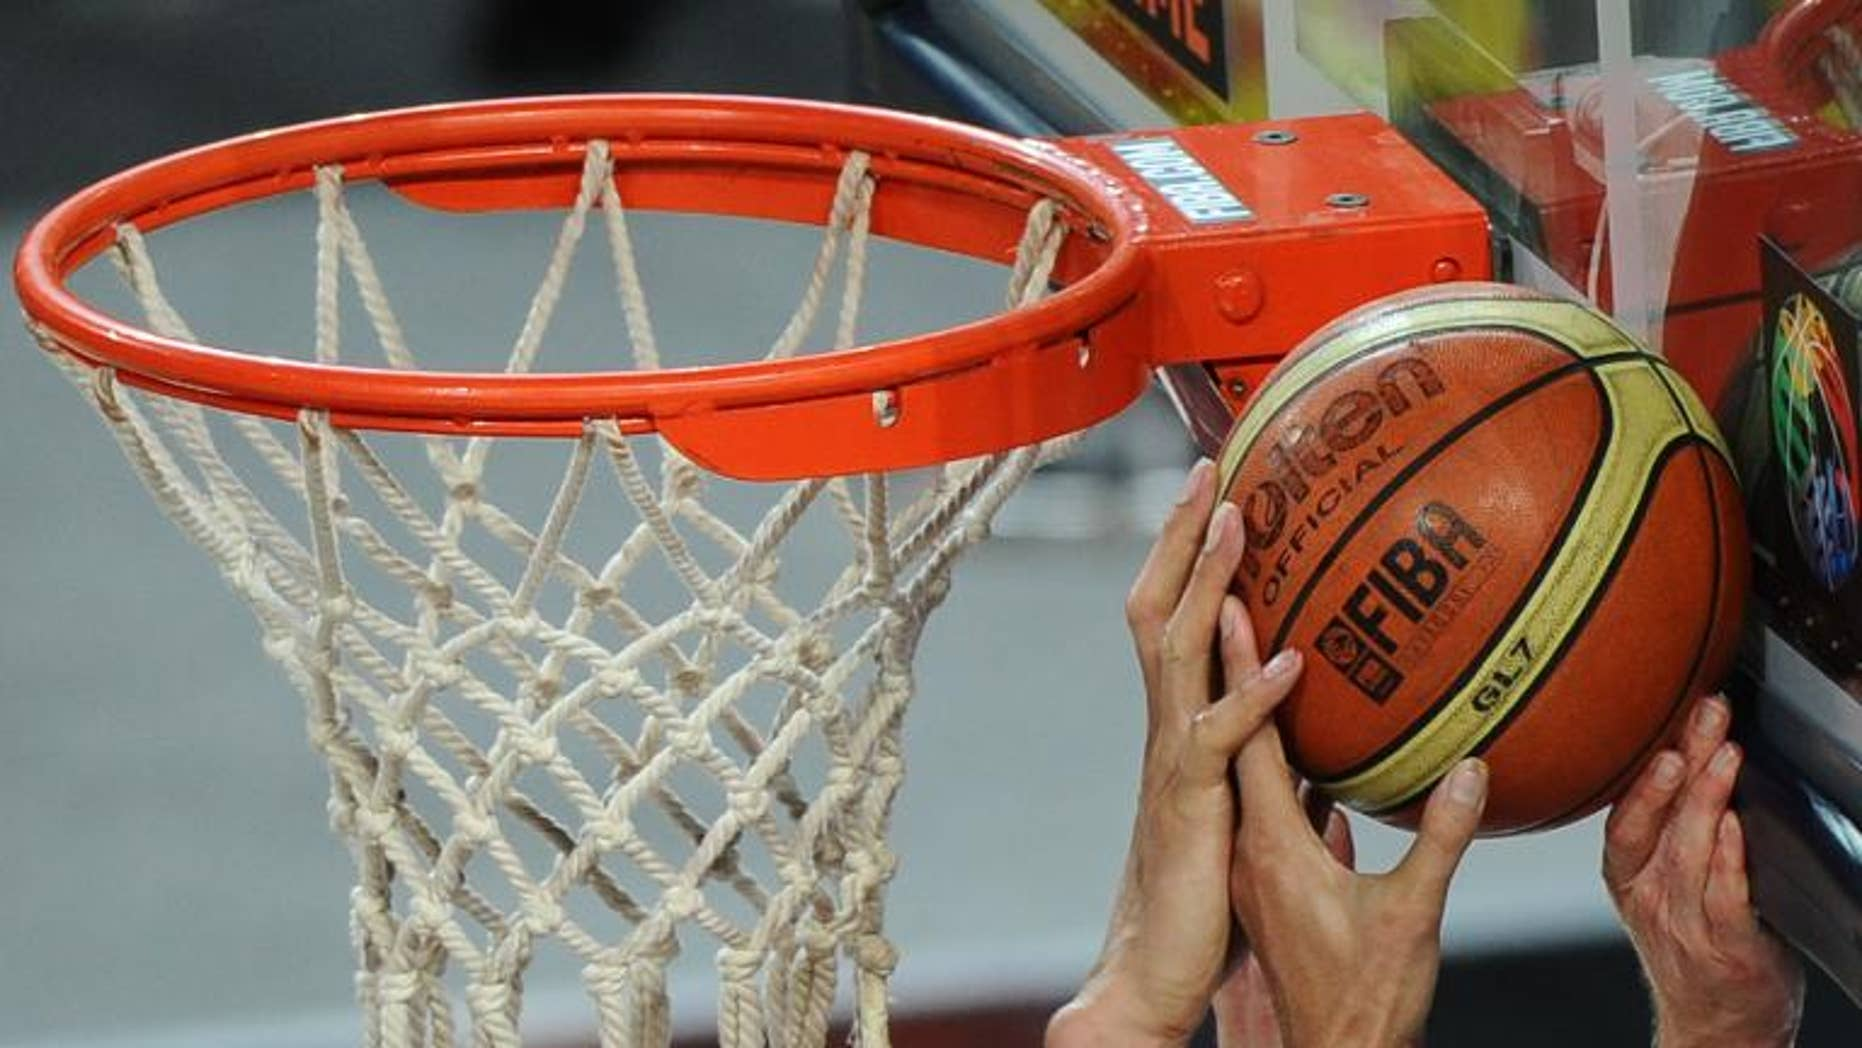 A Japanese court has given a suspended jail sentence to a former basketball coach for repeated physical abuse of a teenage boy who later killed himself